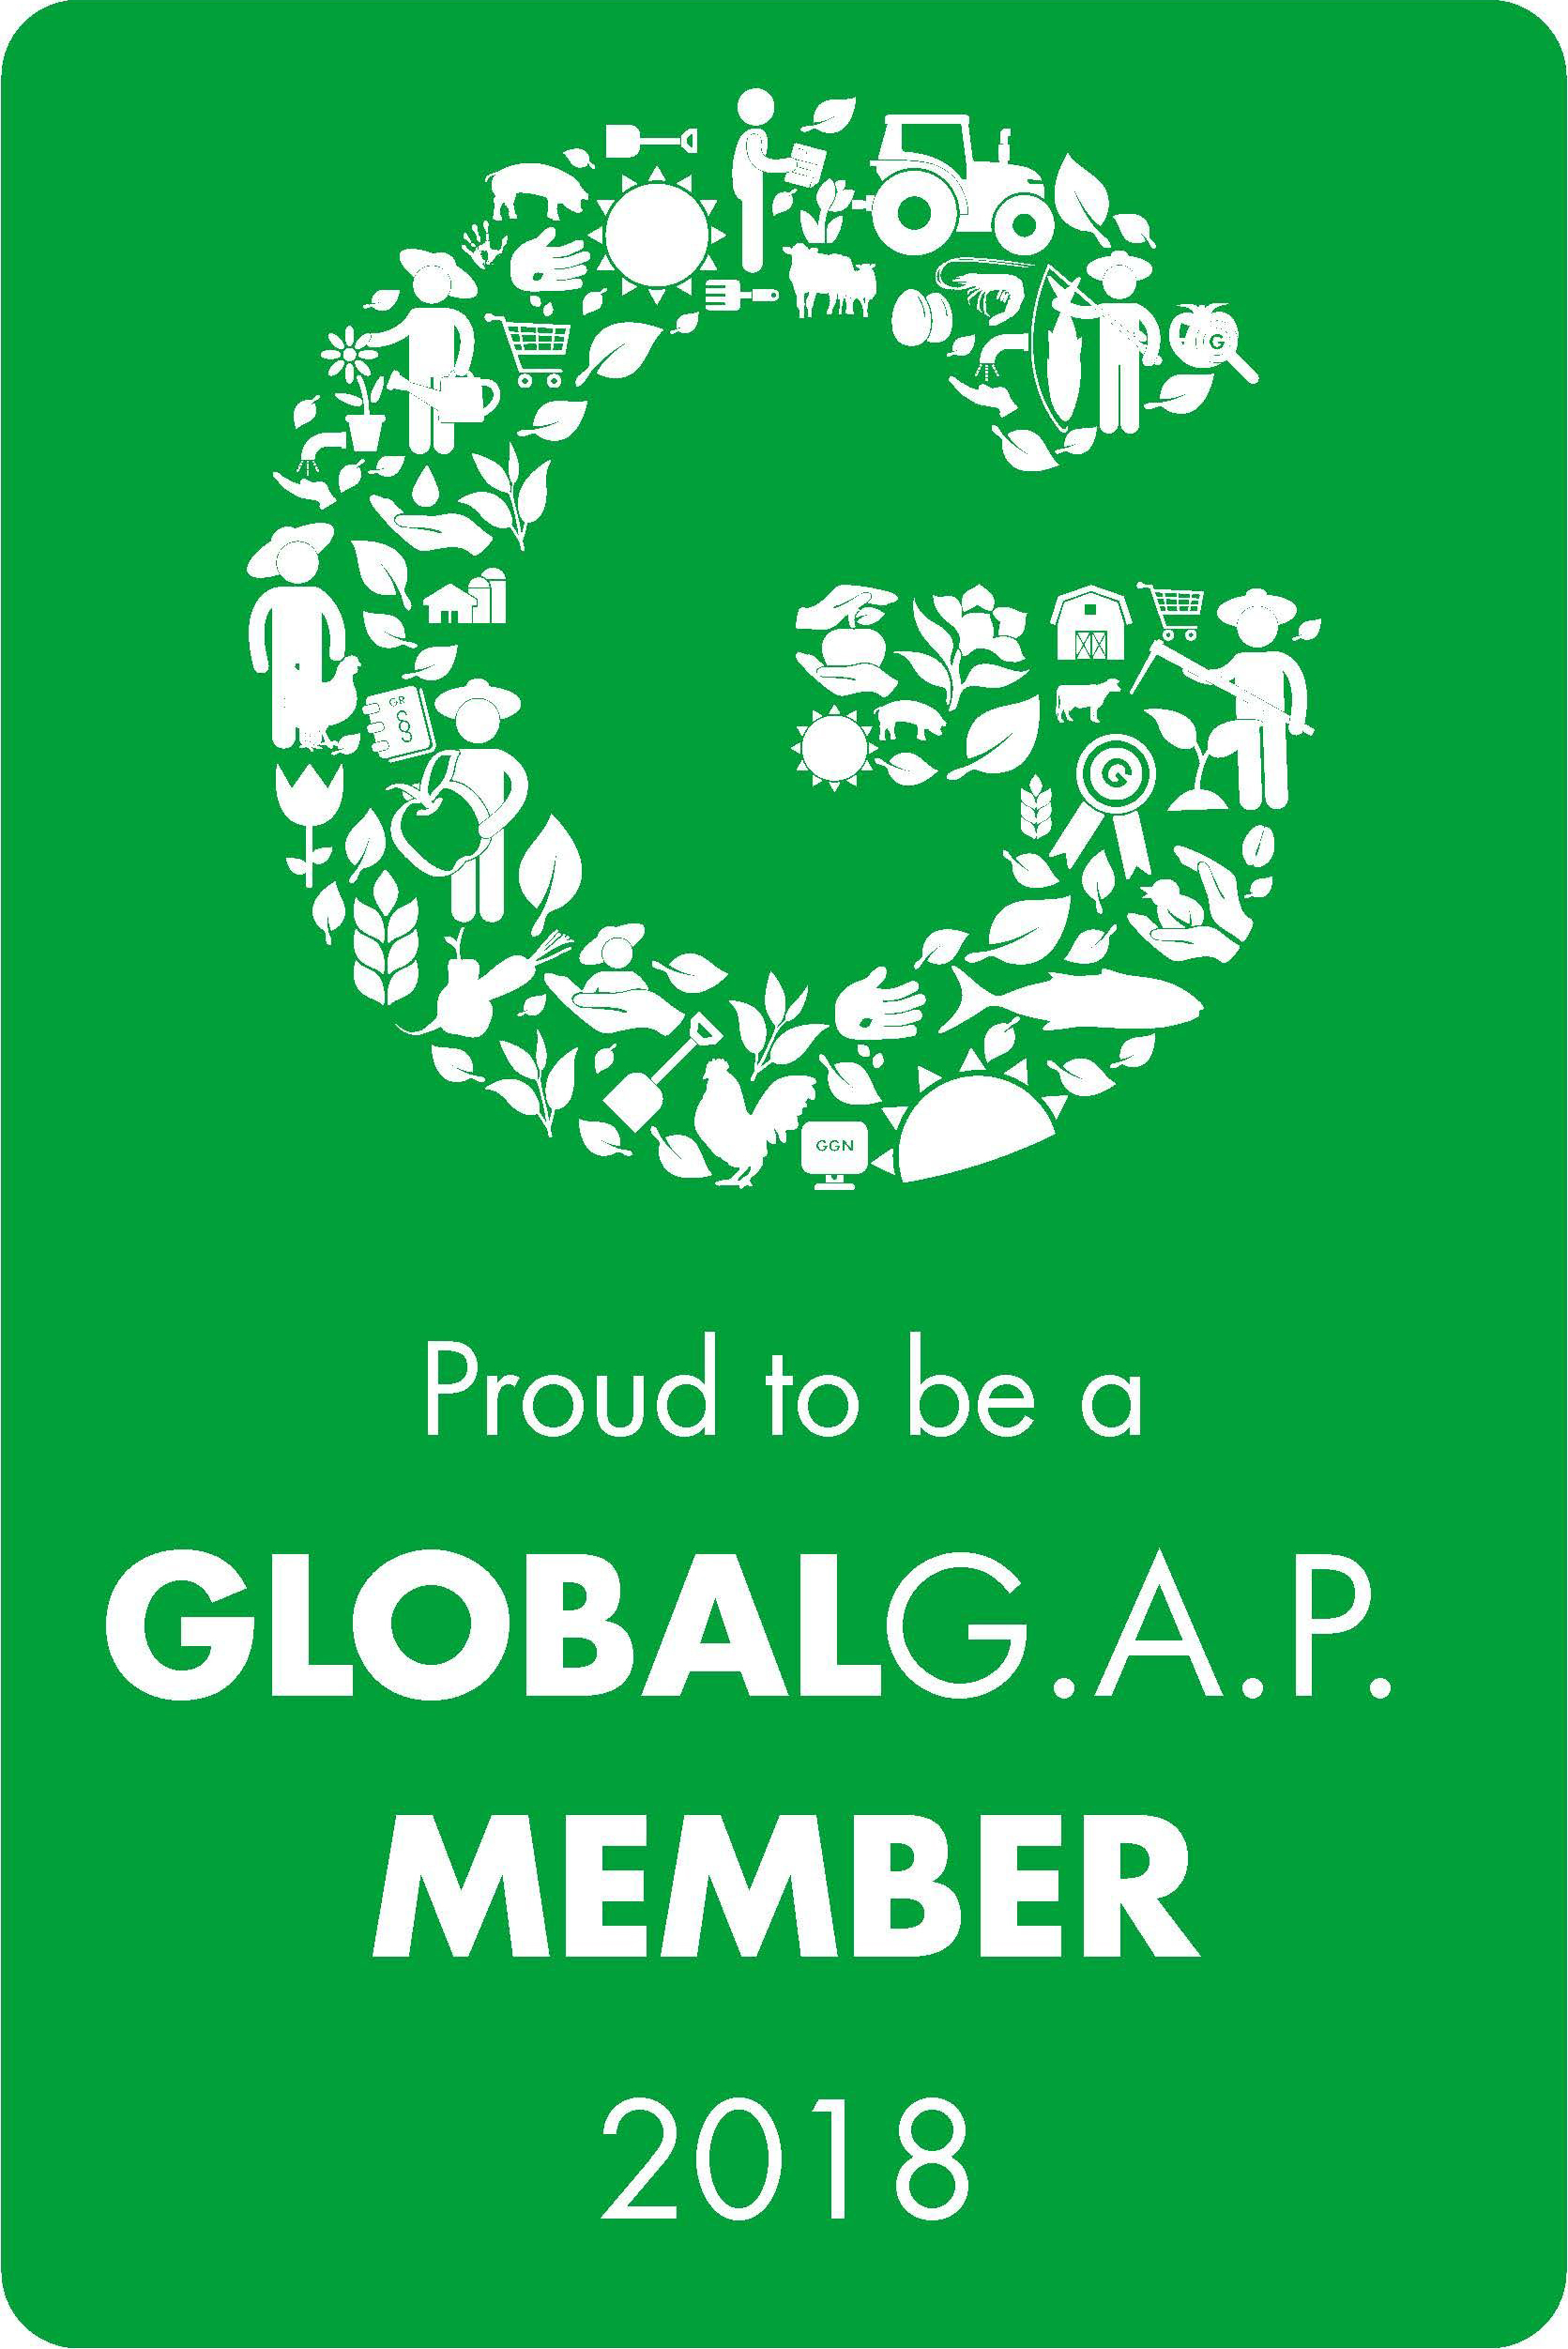 Proud to be a Global G.A.P. Member 2018